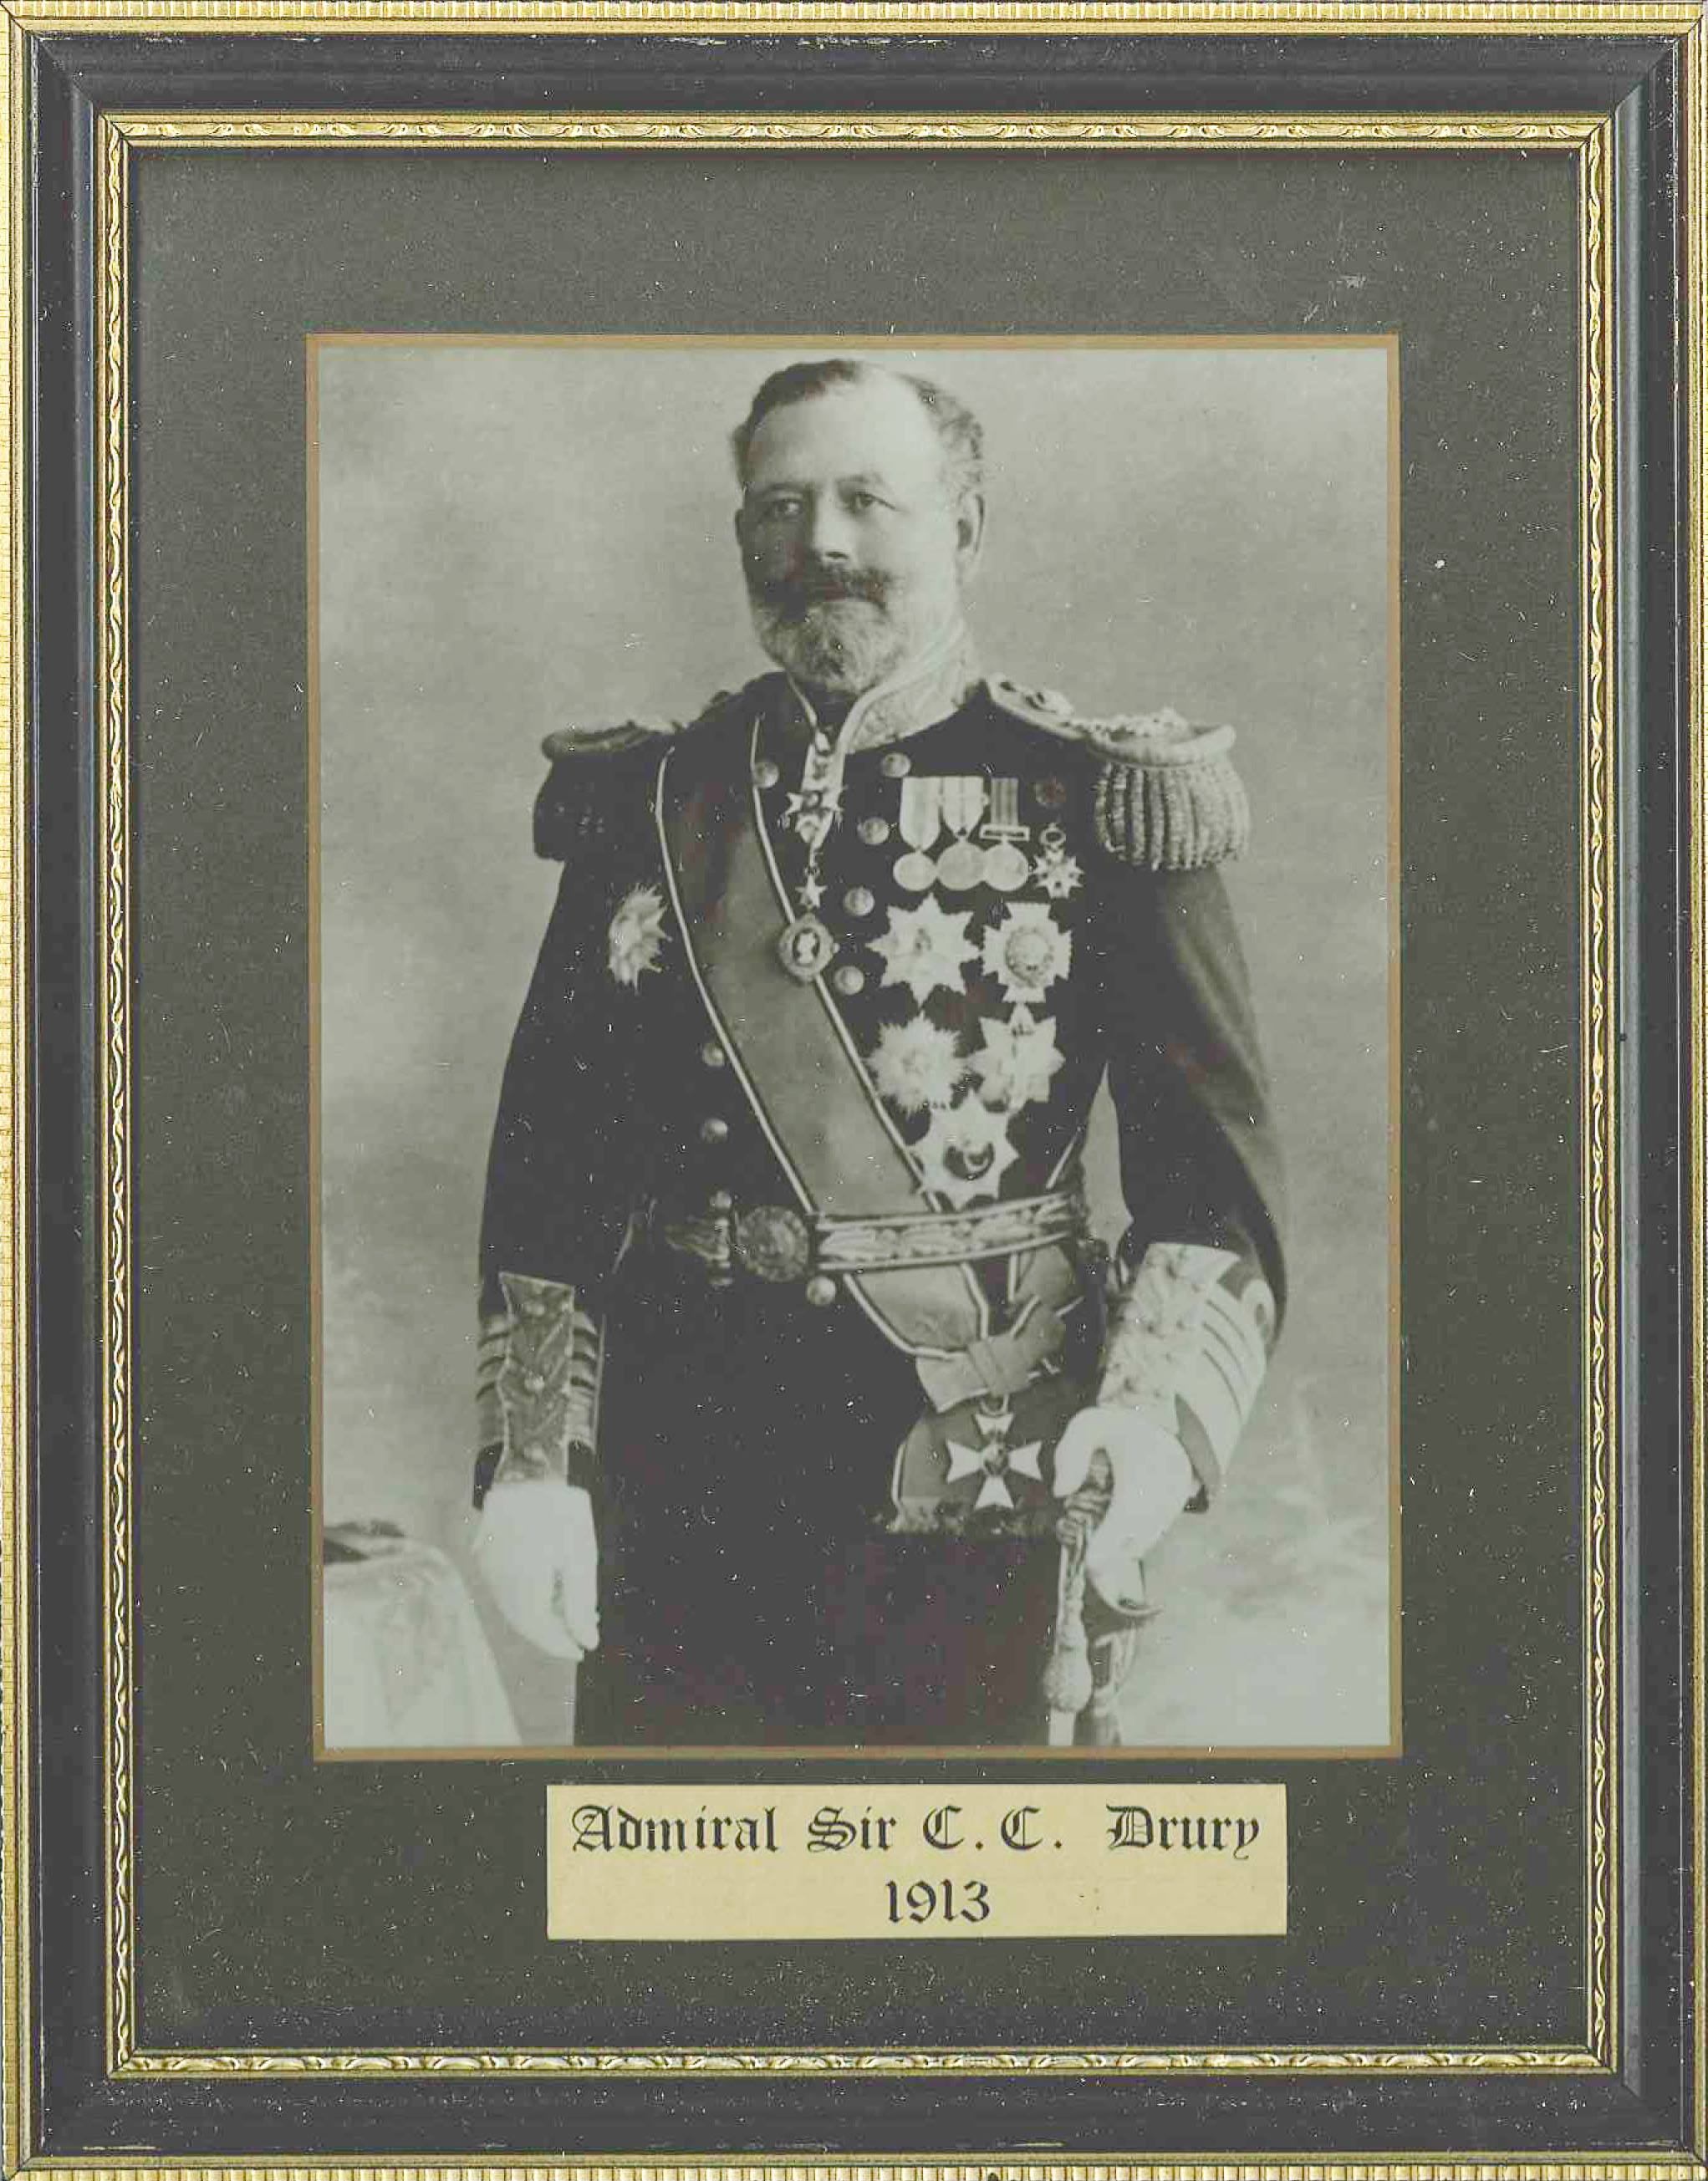 Image of /Admiral Sir C.C. Drury